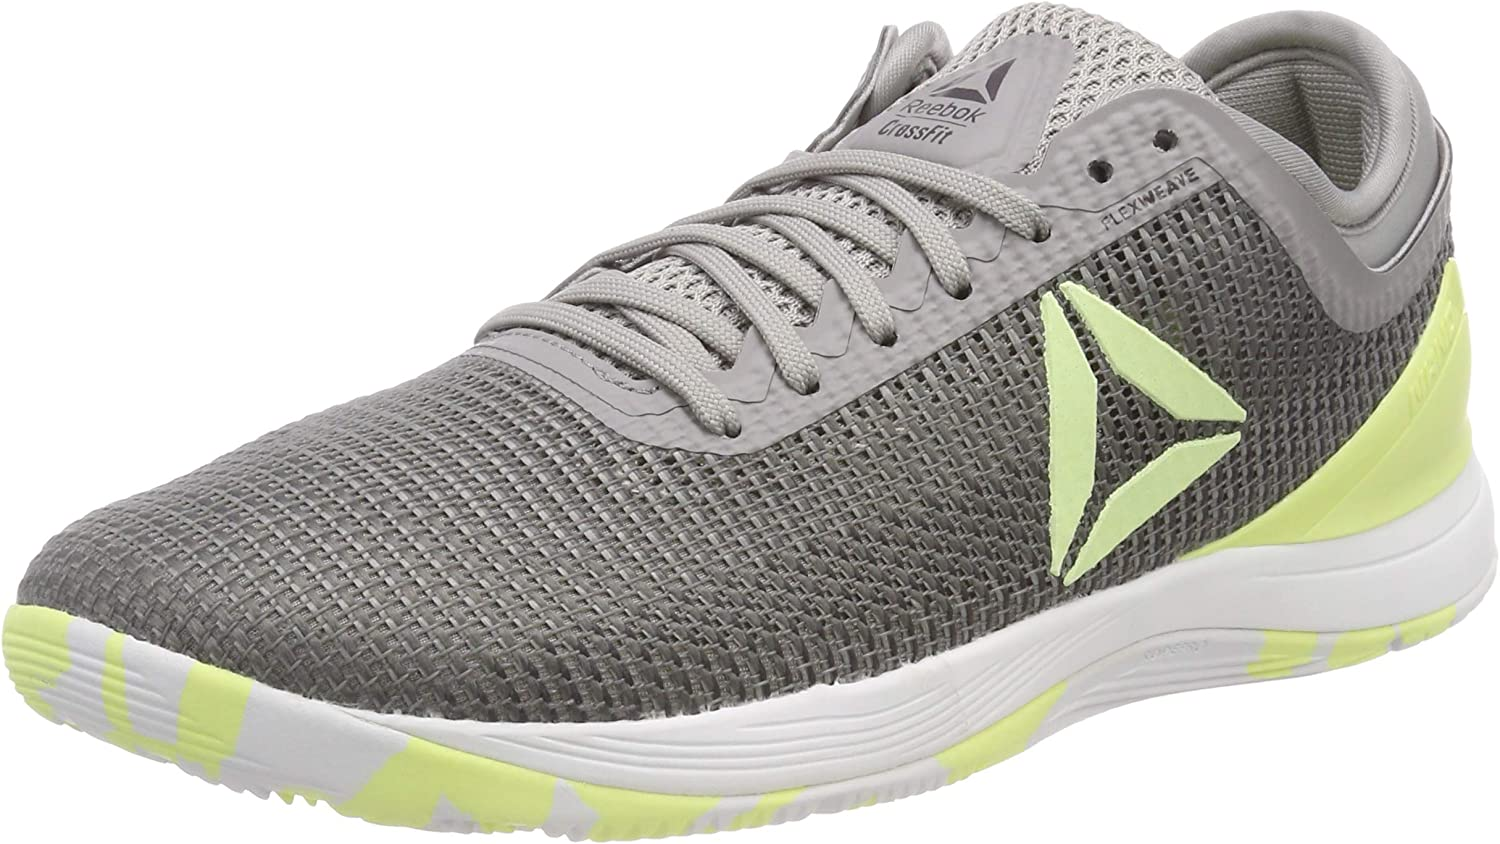 pestaña canal Dinkarville  Reebok Men's R Crossfit Nano 8.0 Fitness Shoes: Amazon.co.uk: Shoes & Bags